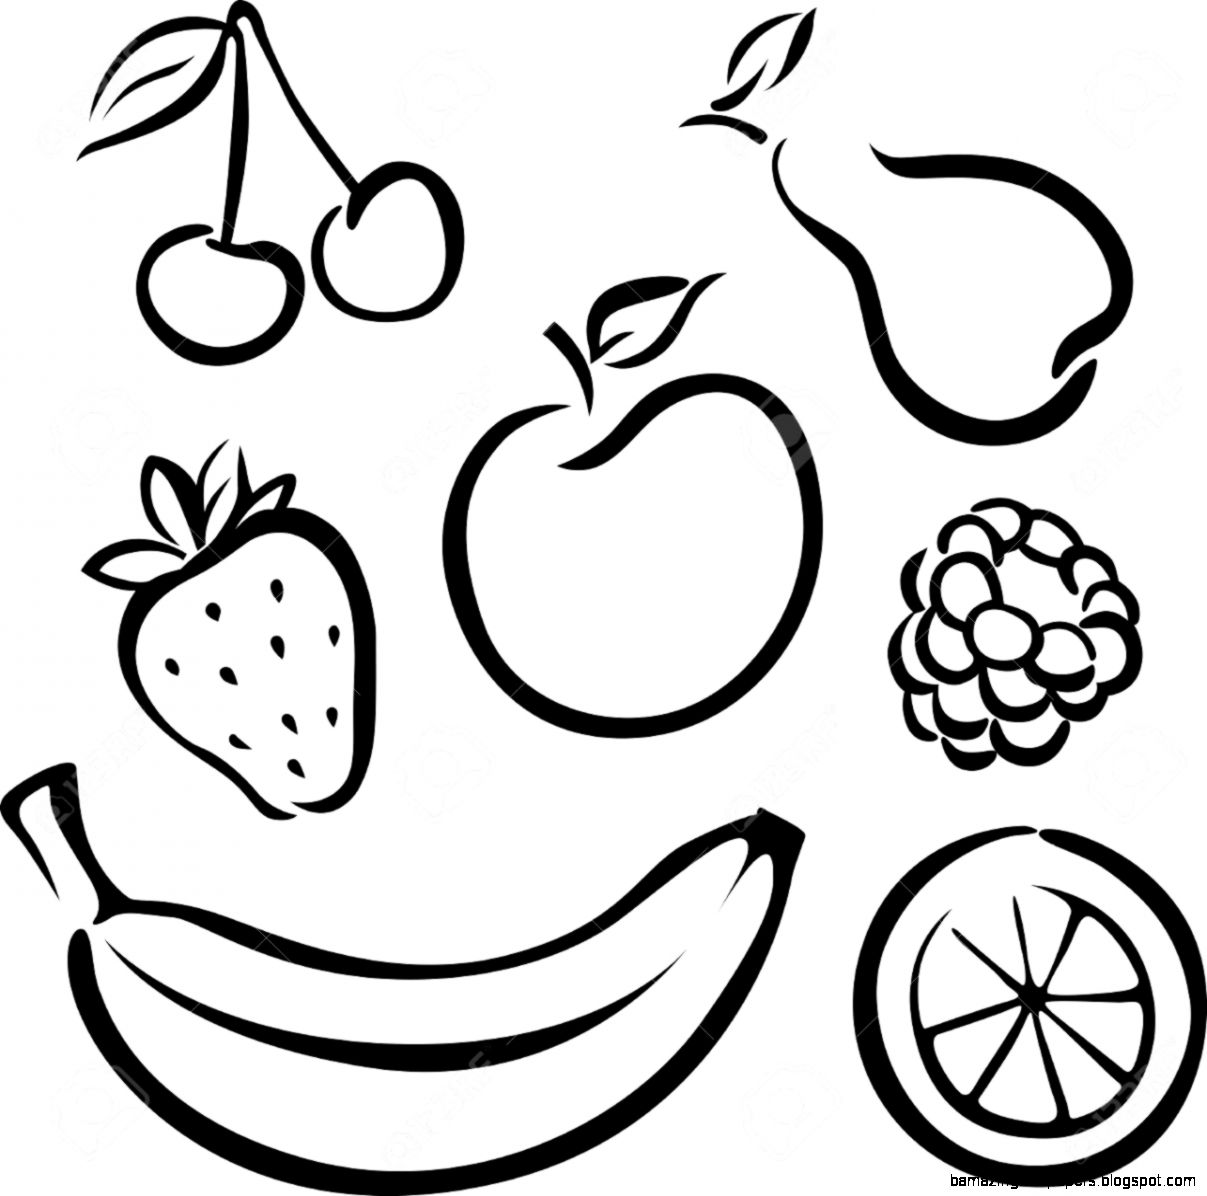 Fruit Clipart Black And White.